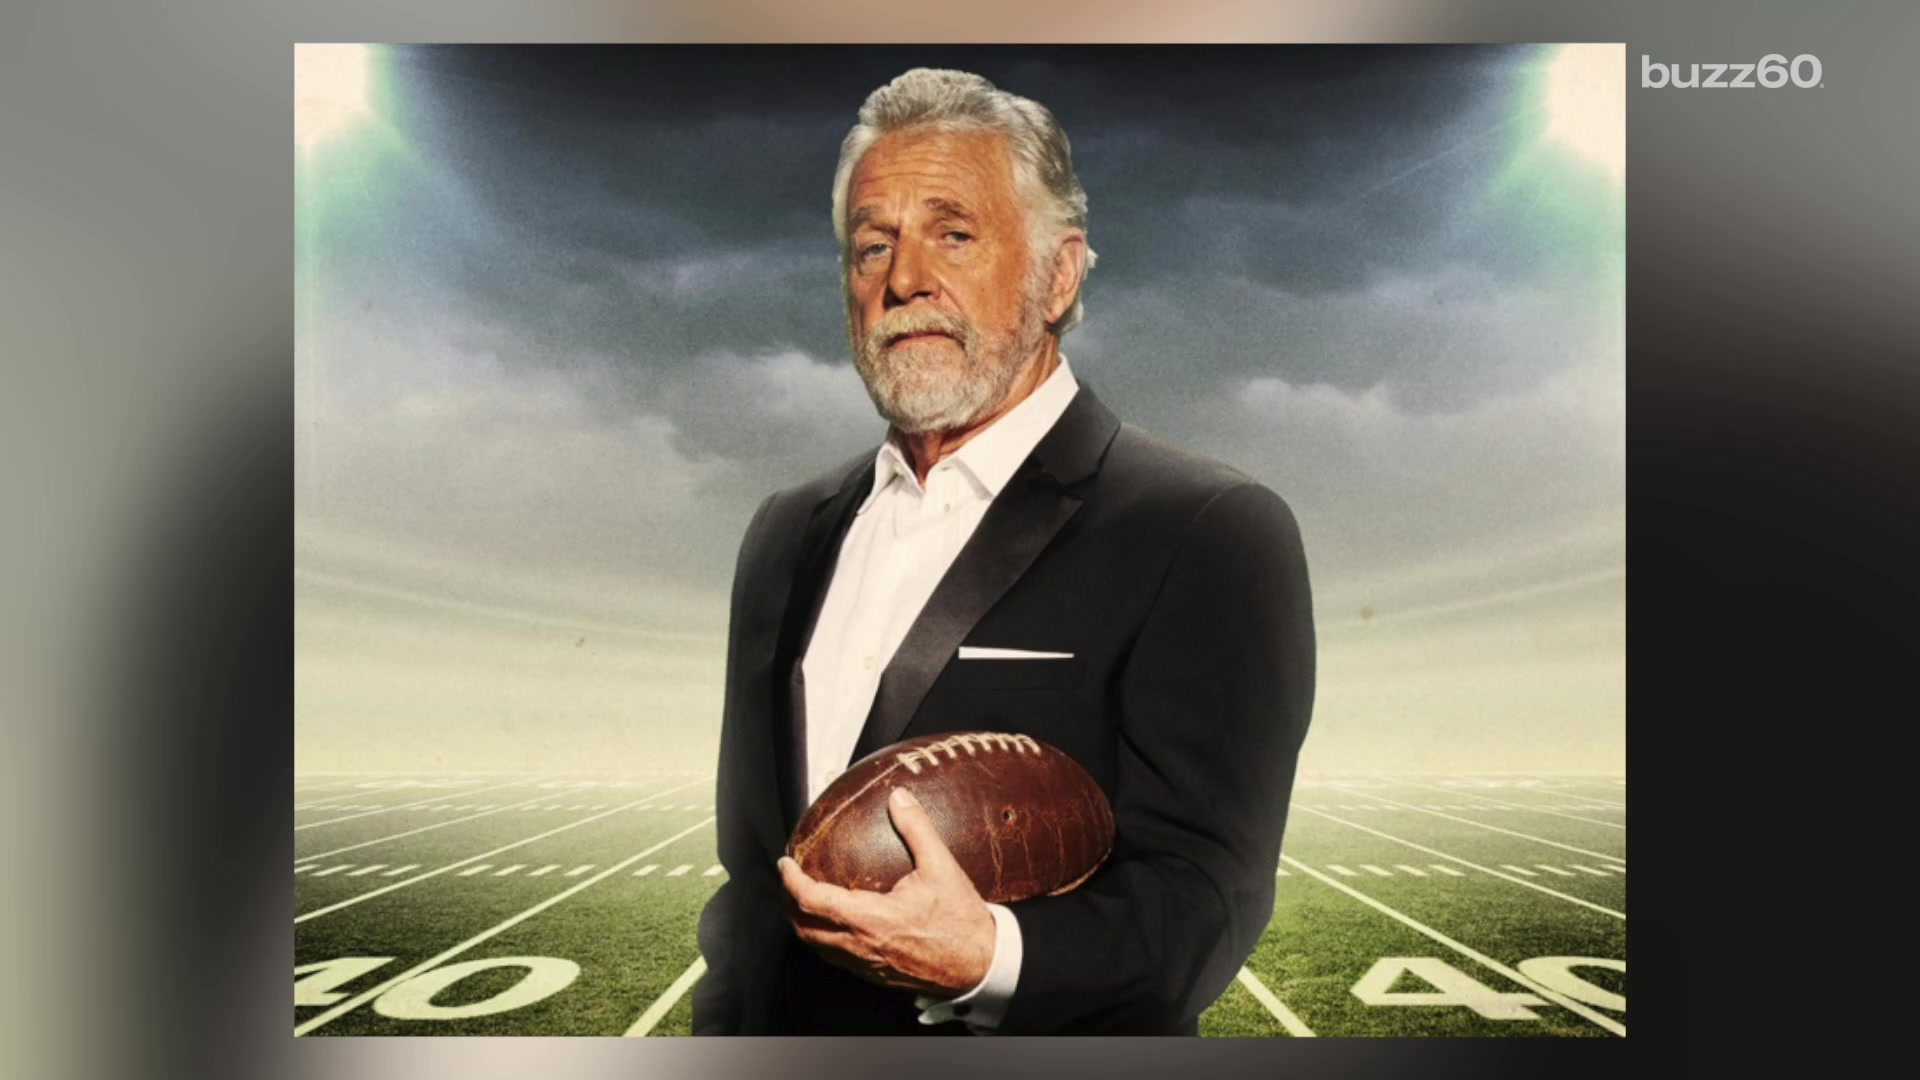 'The Most Interesting Man in the World' Is in the Most Interesting Legal Battle